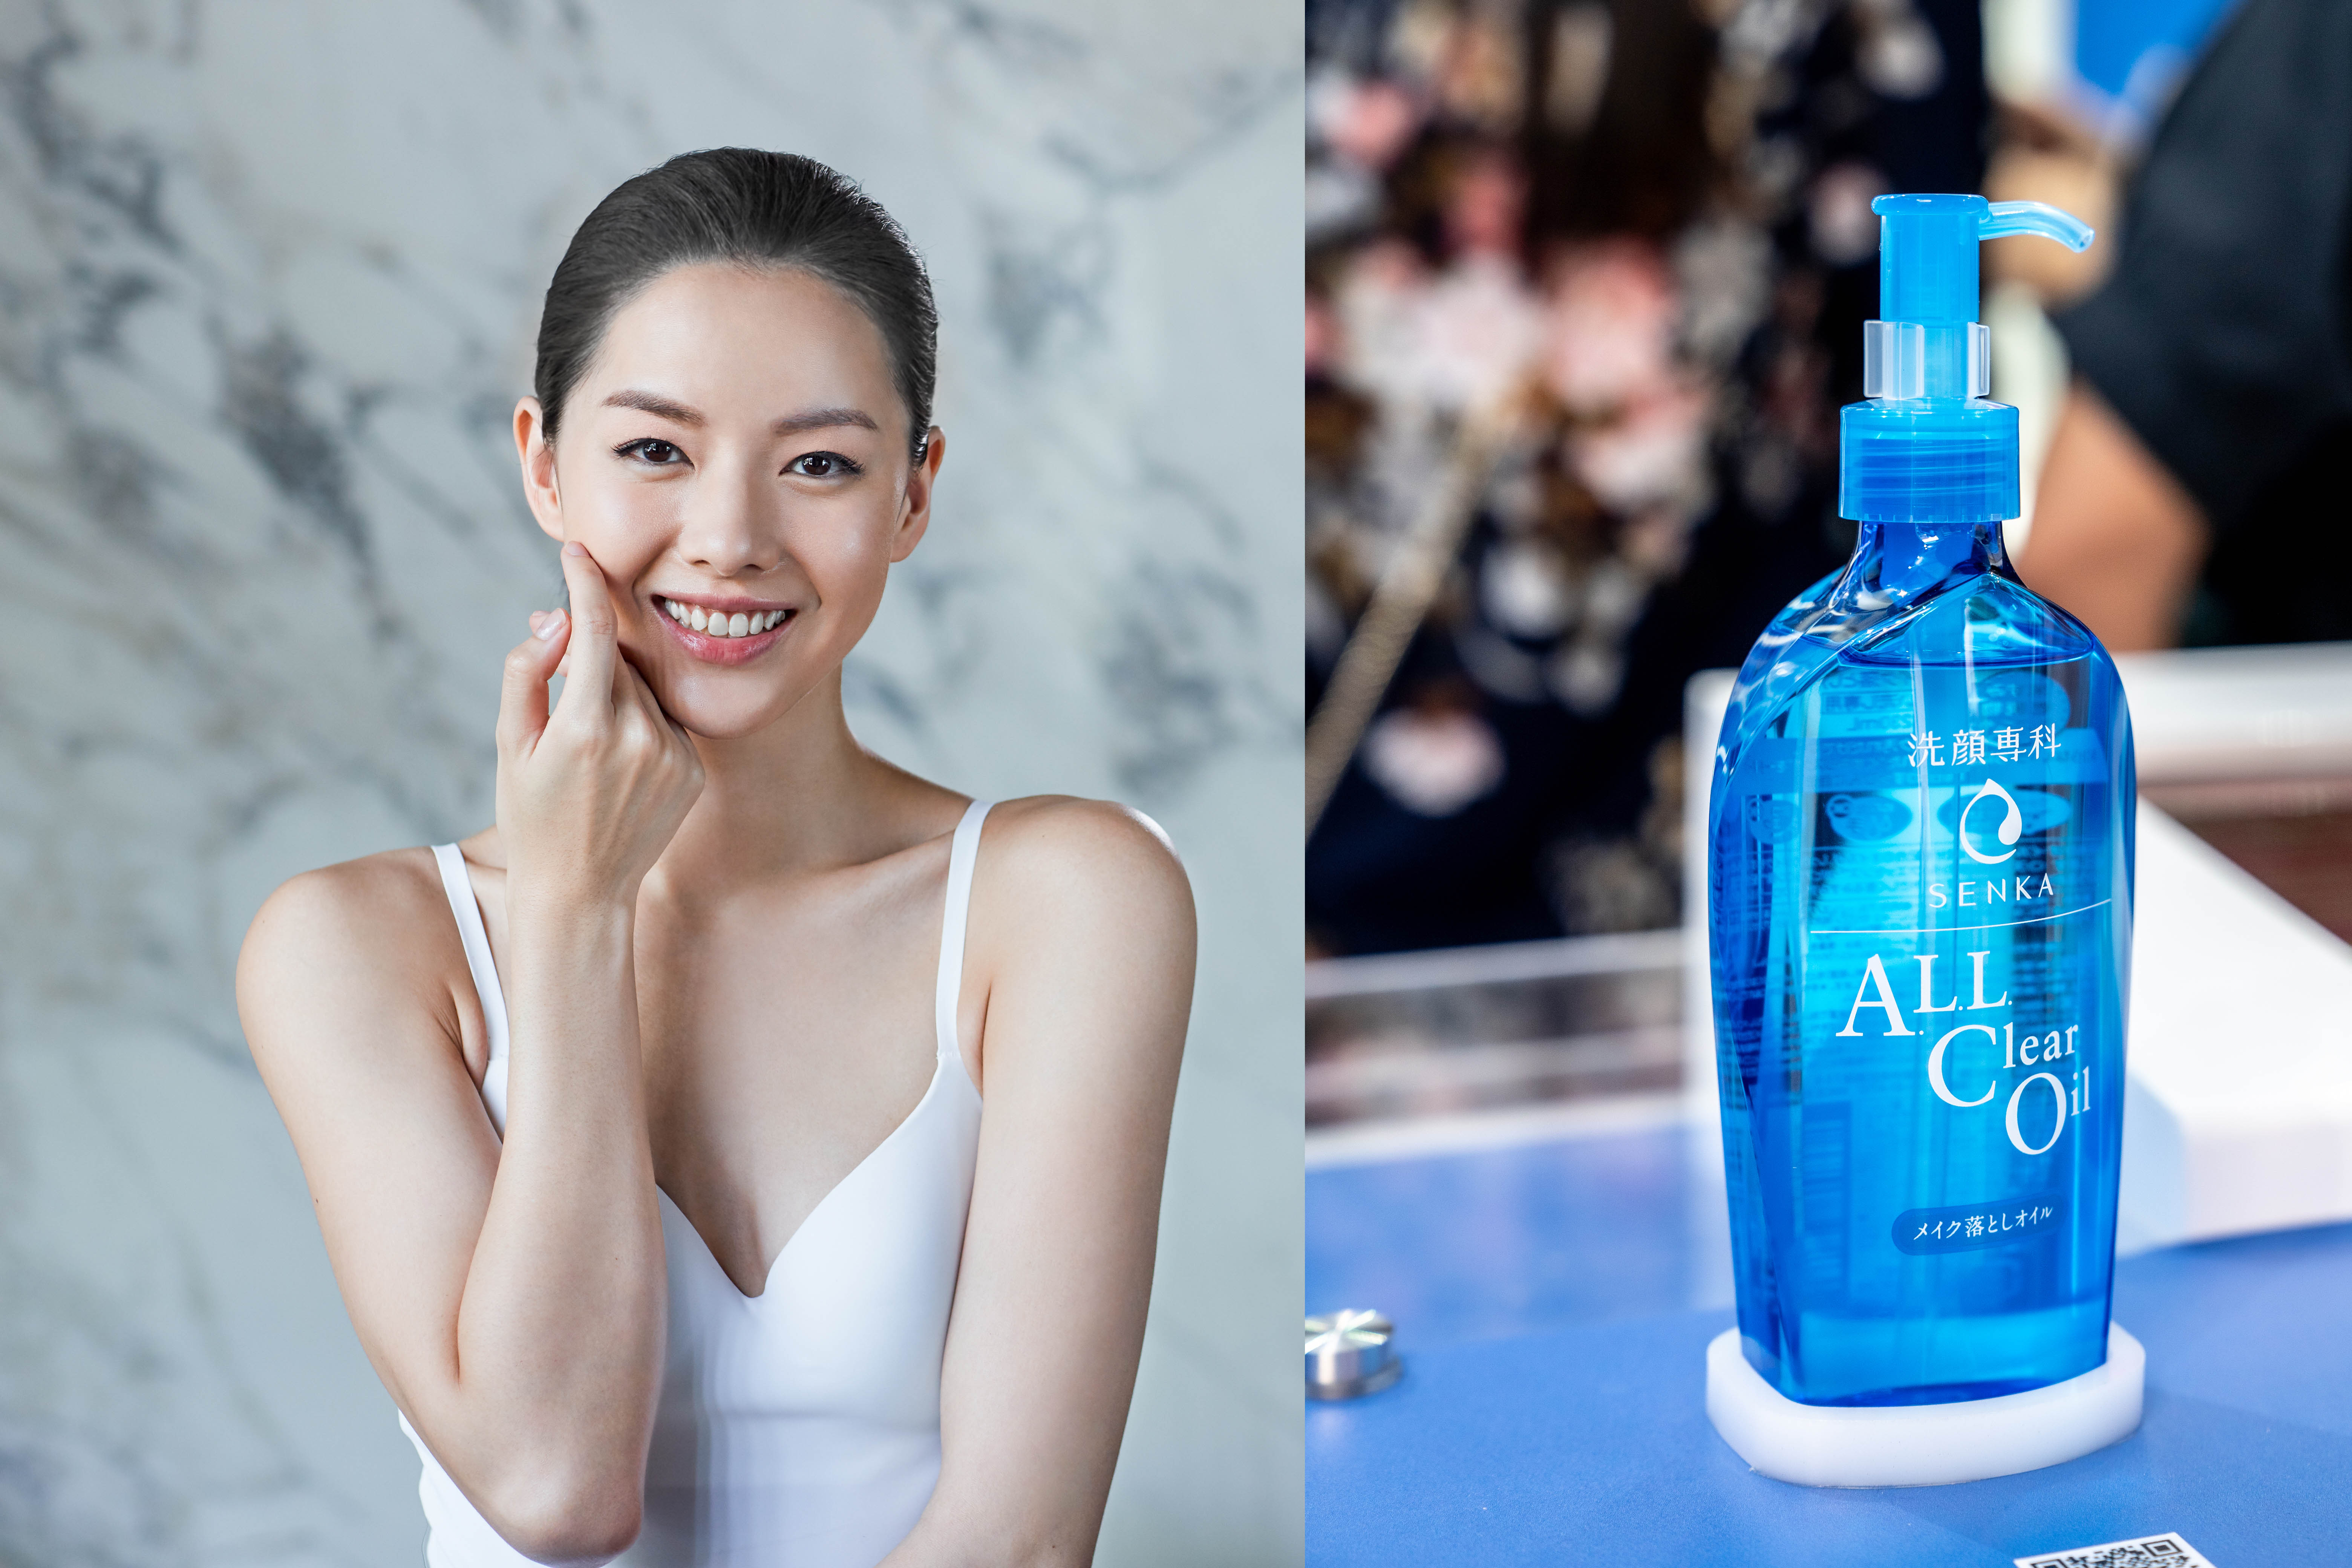 Shiseido My Japanese Beauty Pop-up Store is officially open – find it here - Alvinology